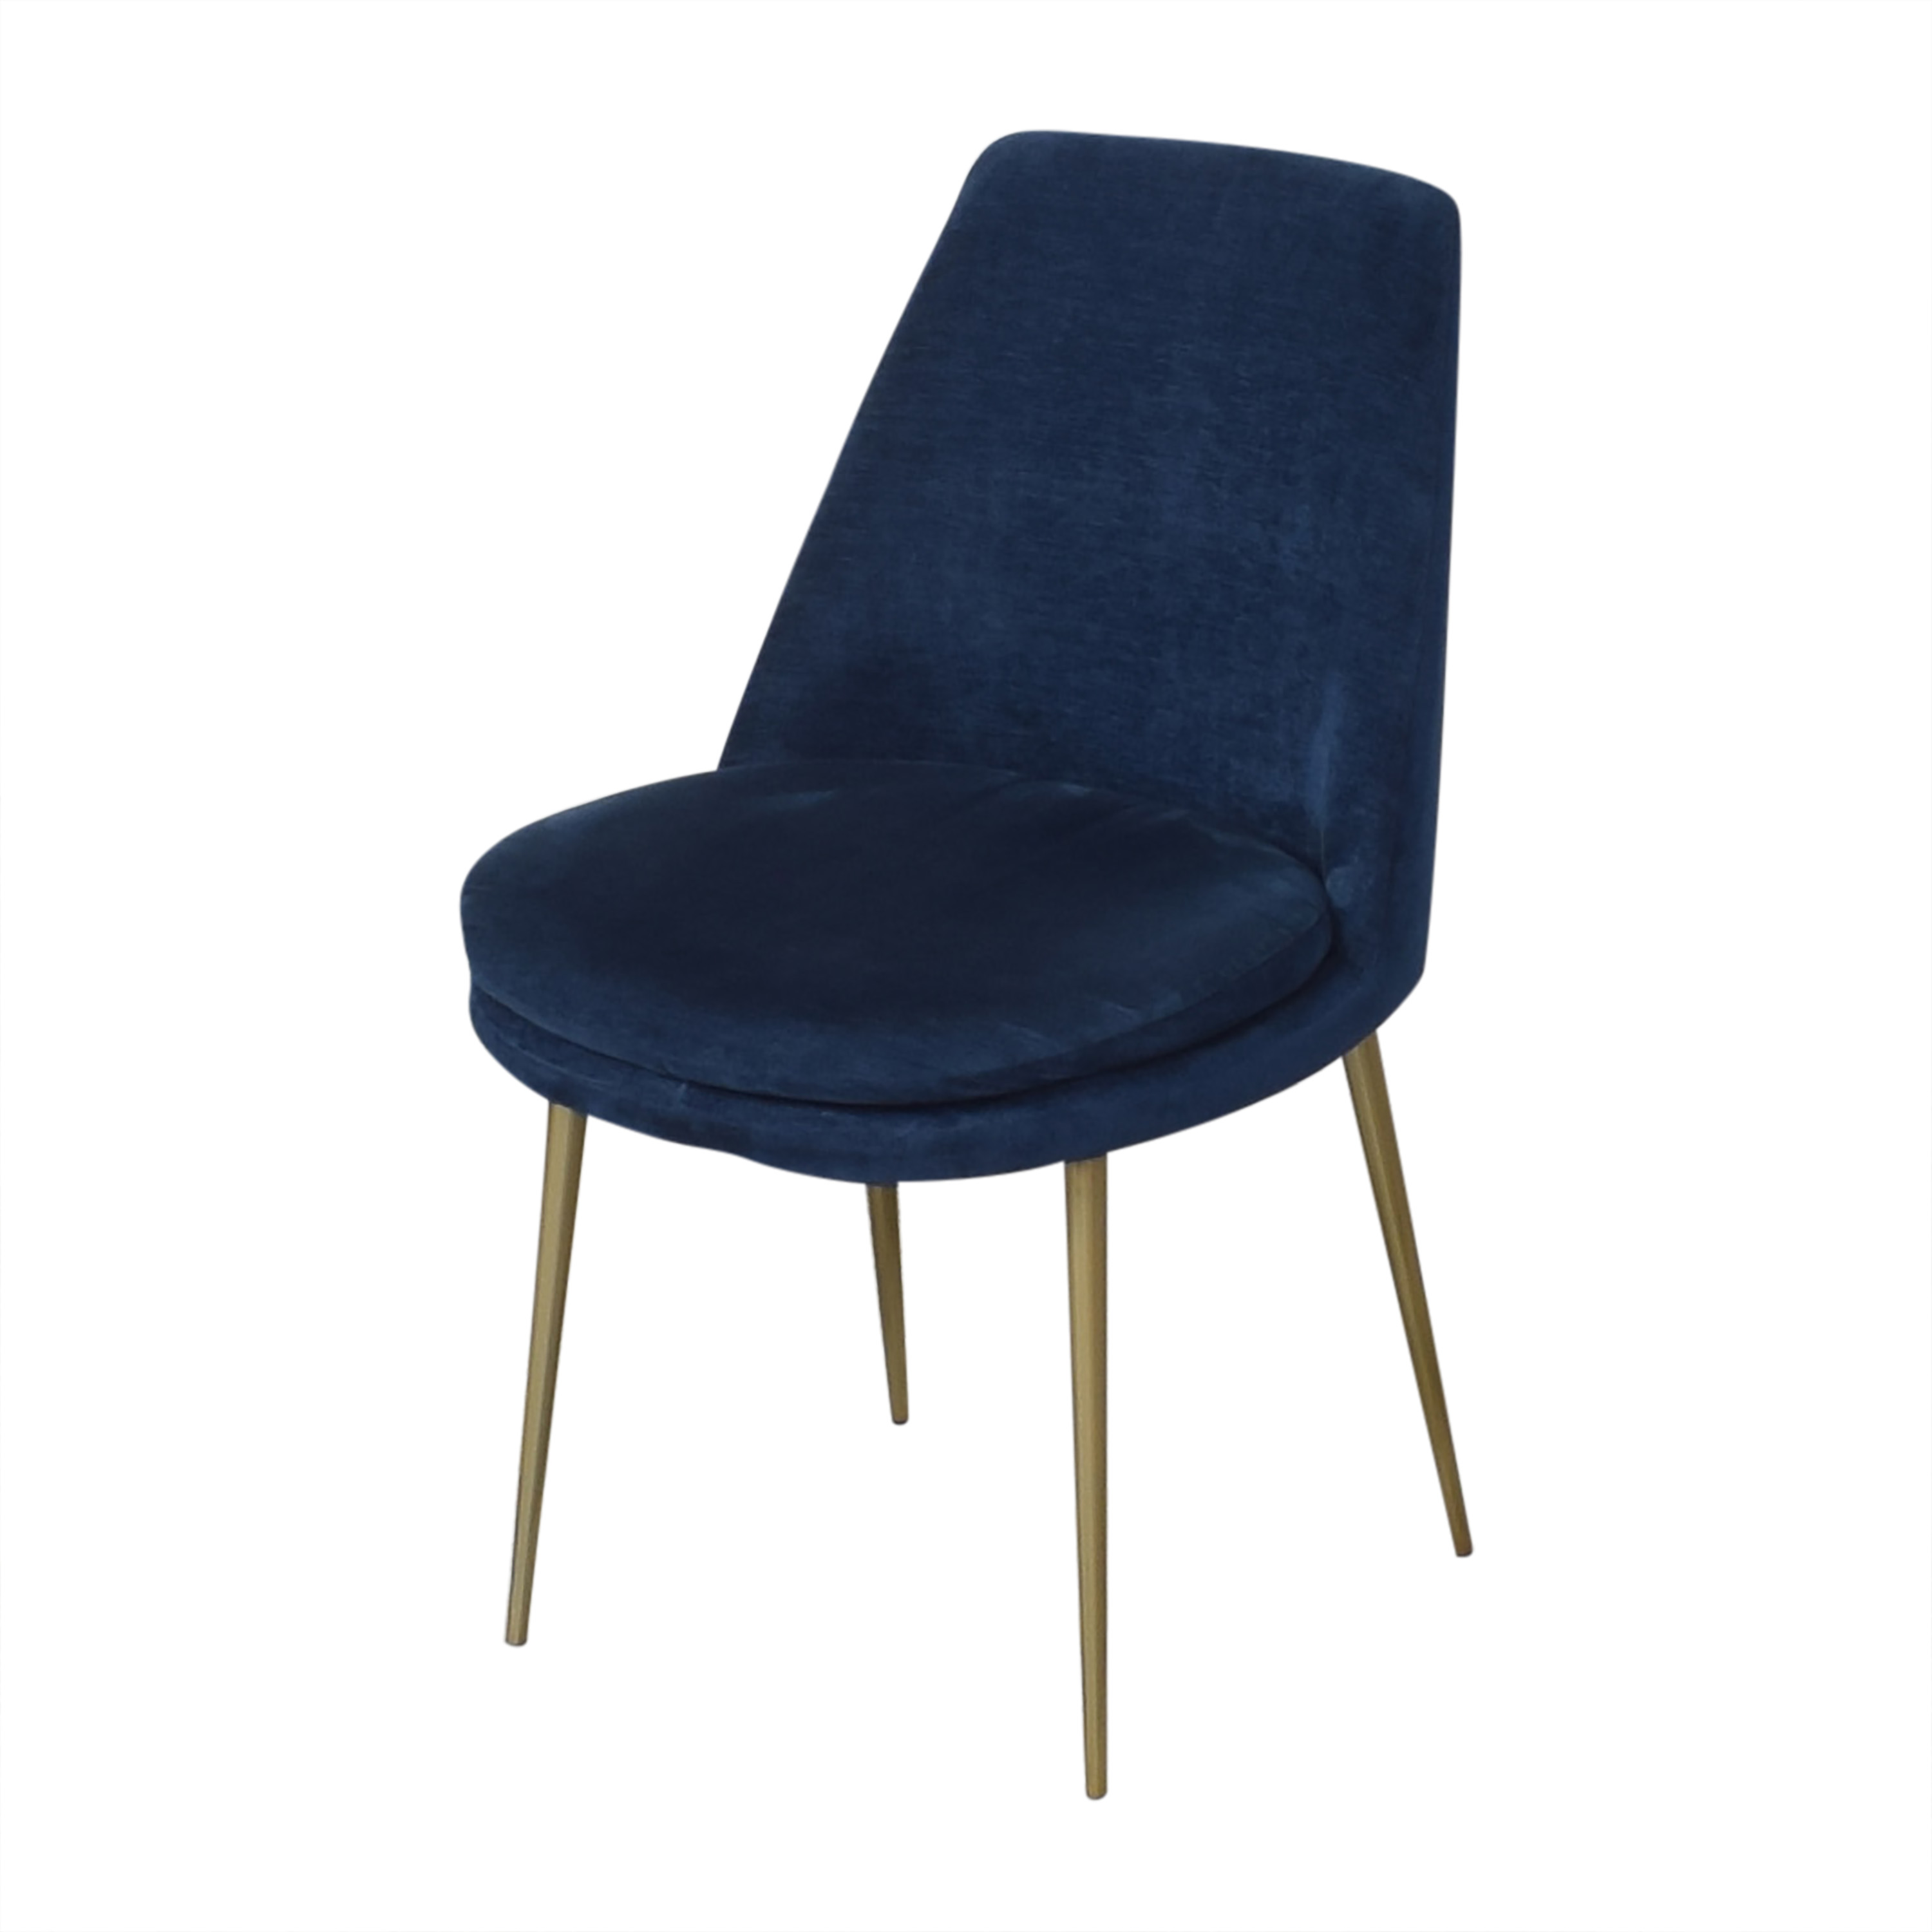 buy West Elm Mid-Century Upholstered Dining Chairs West Elm Chairs